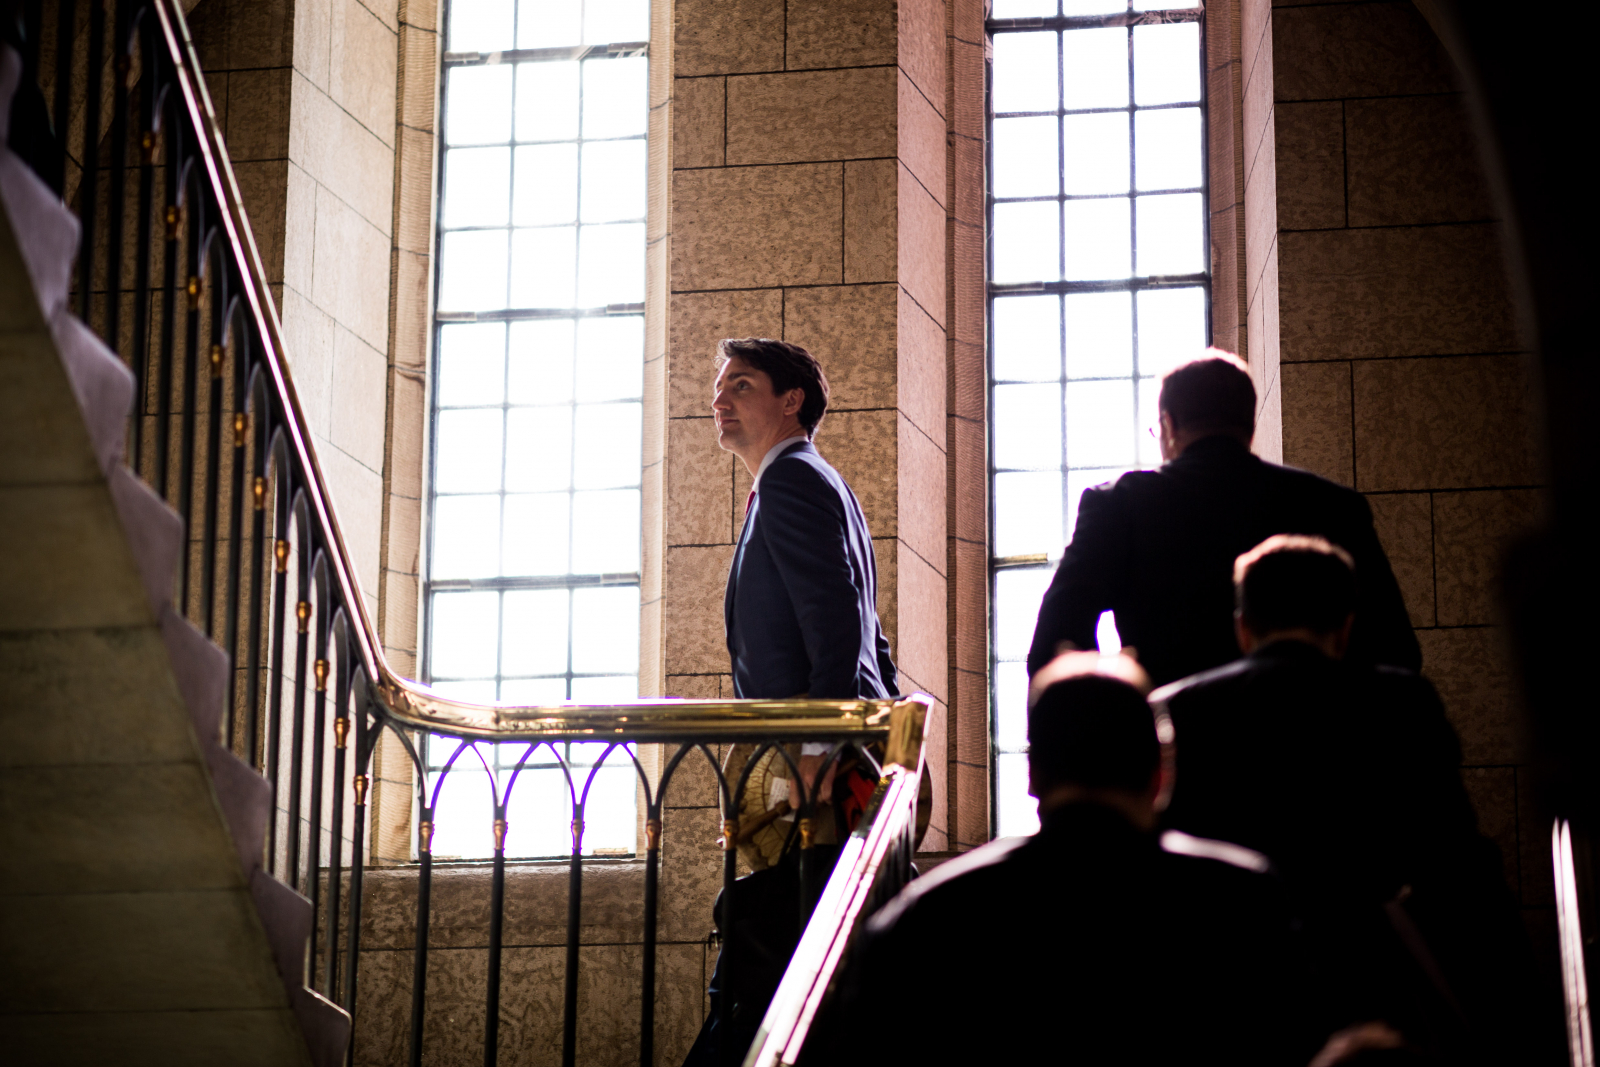 Justin Trudeau, Tsilhqot'in, exoneration, House of Commons, Ottawa, British Columbia